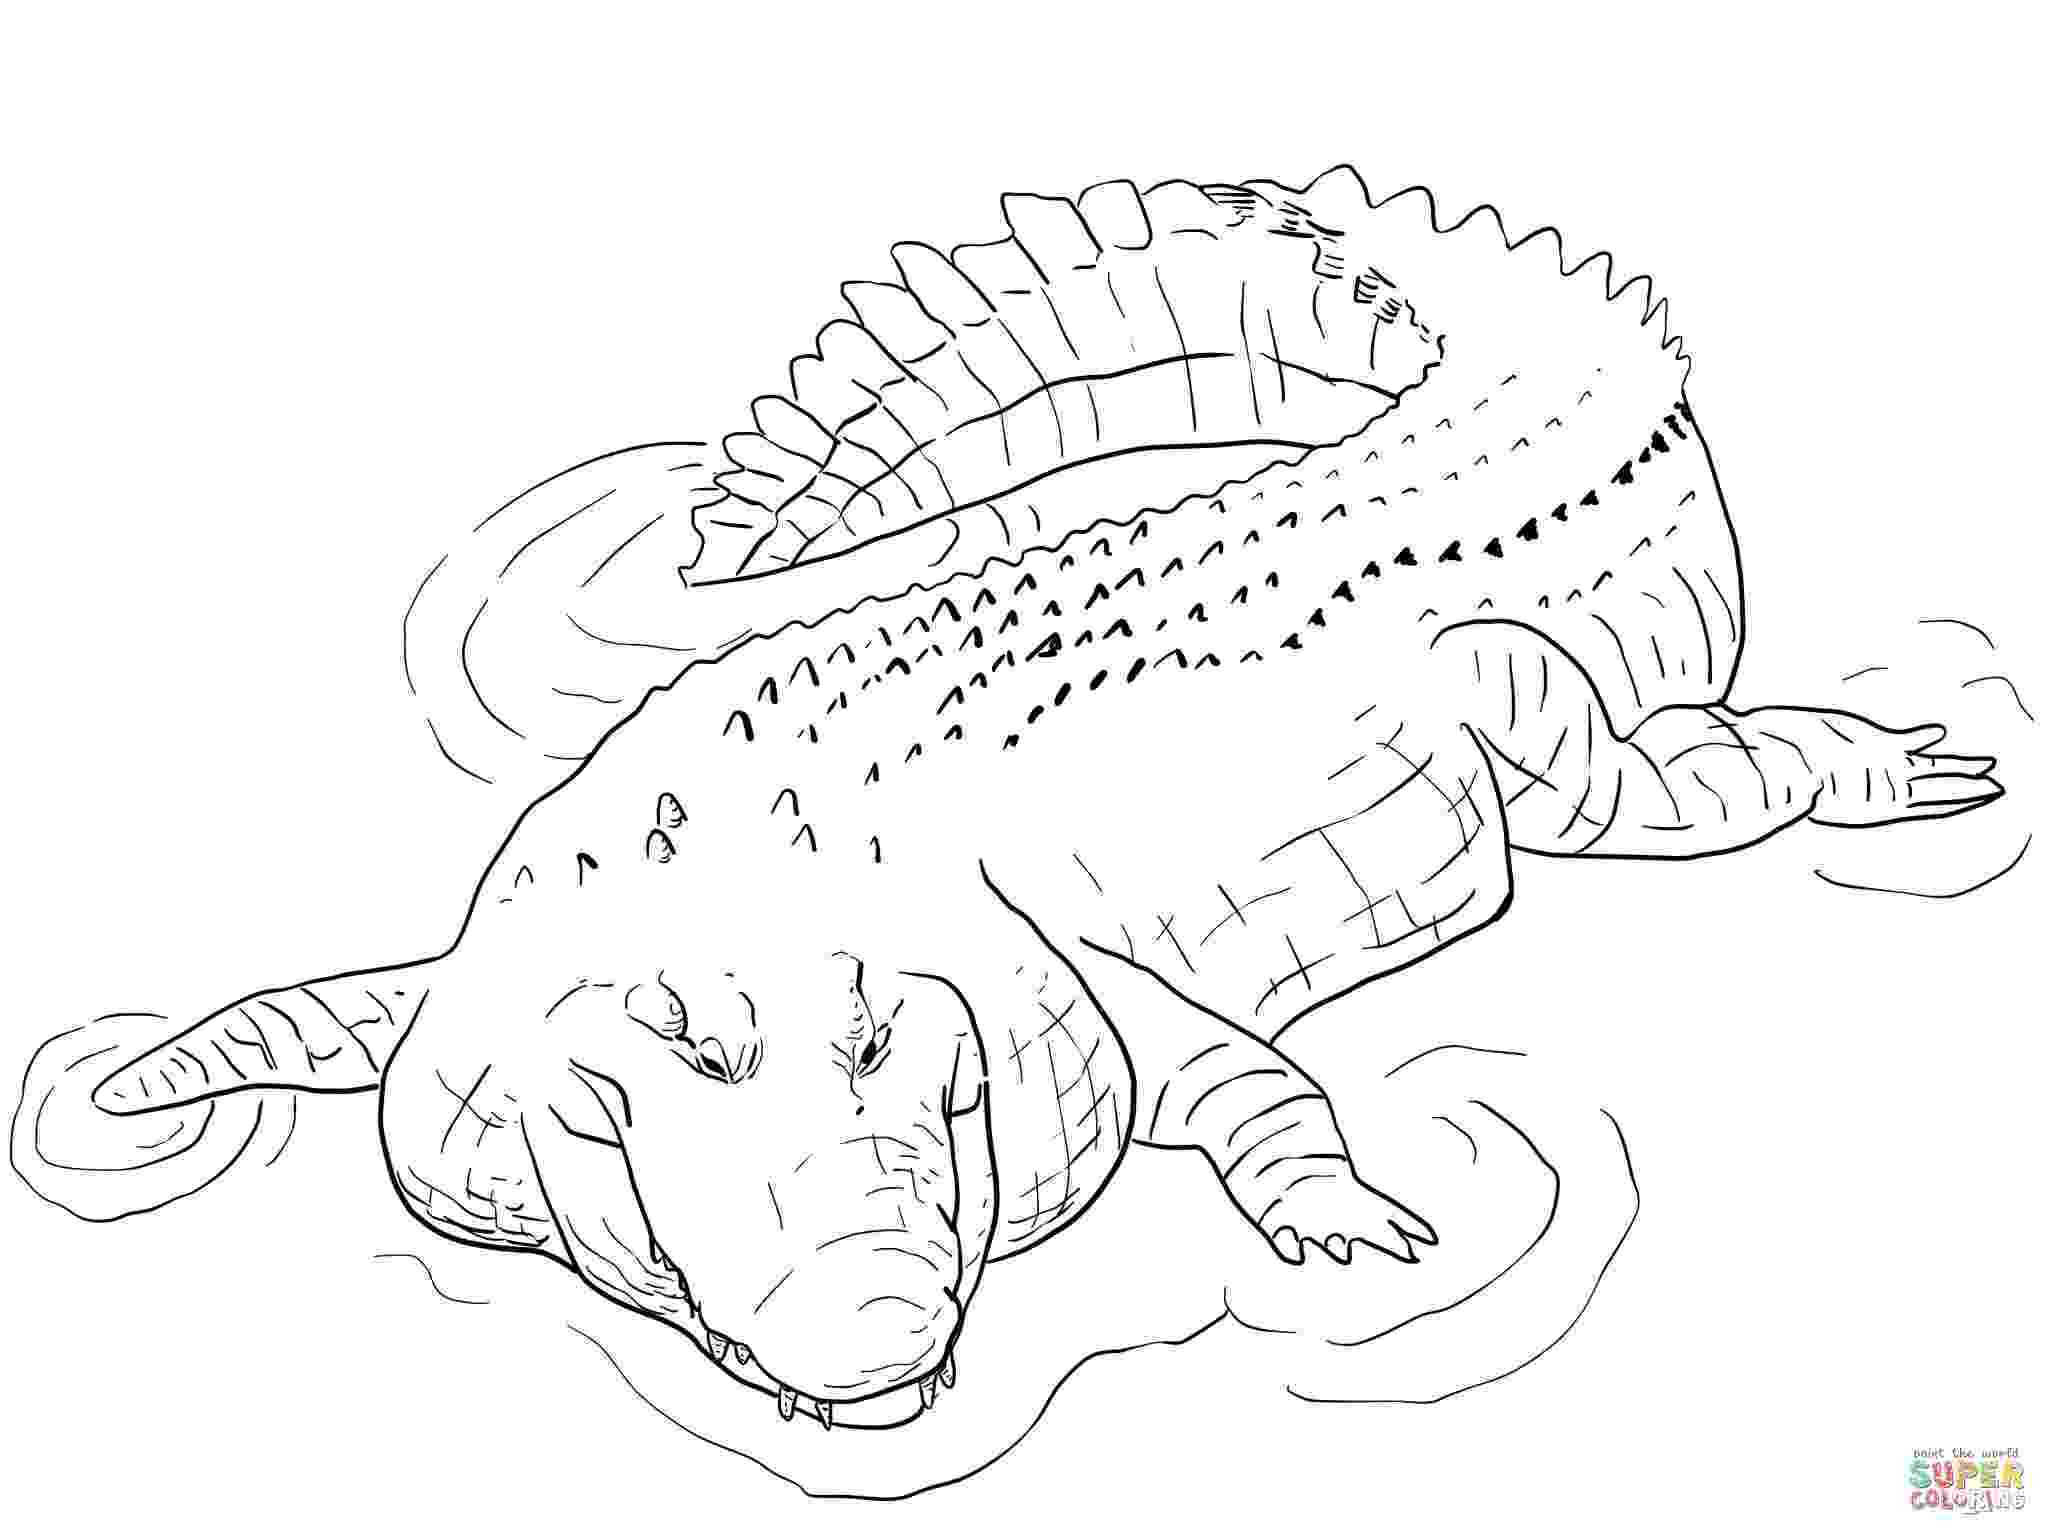 crocodile colouring crocodile coloring pages to download and print for free colouring crocodile 1 1